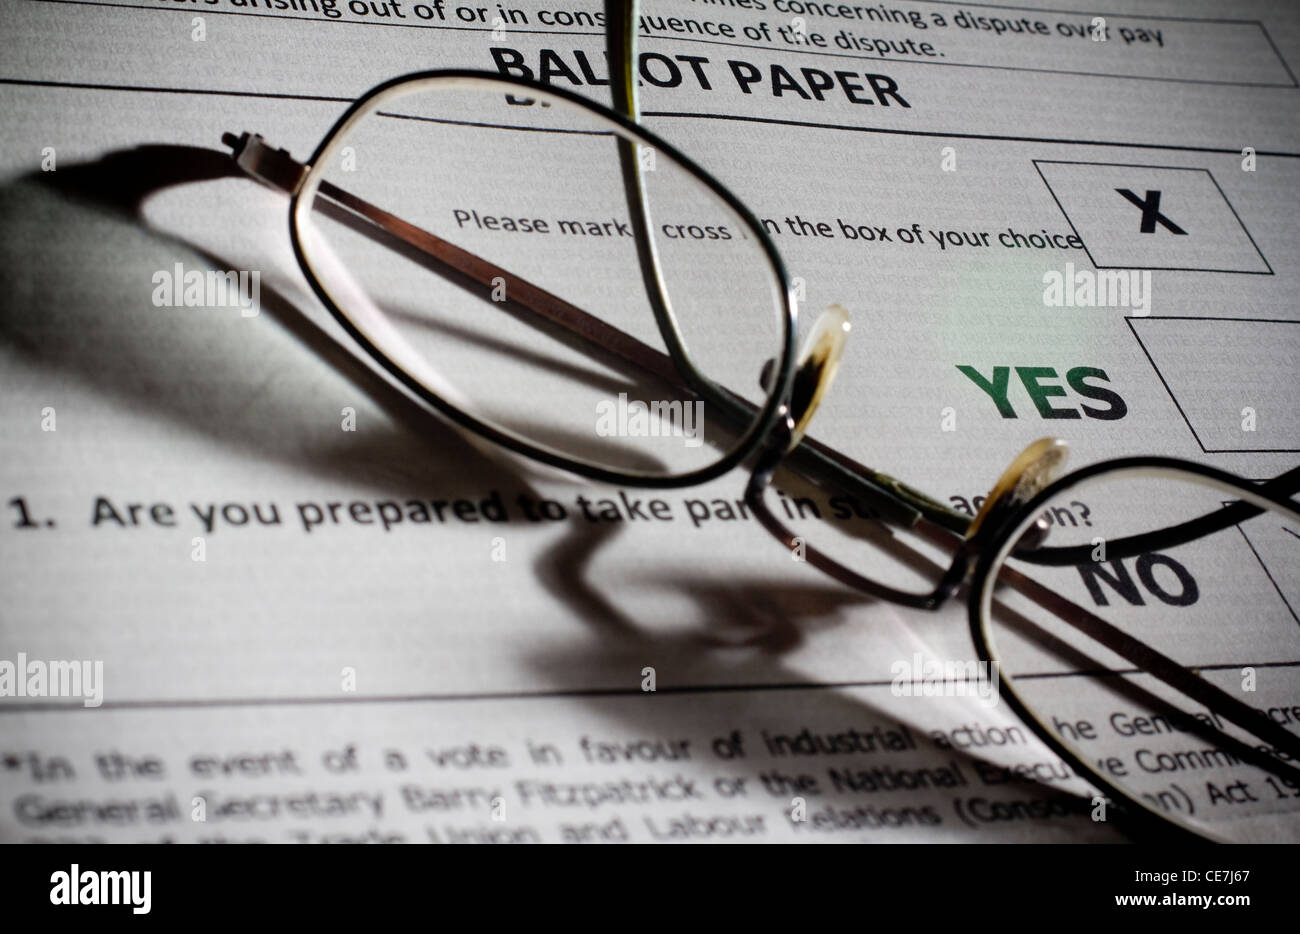 UK ballot paper for strike action industrial dispute - Stock Image